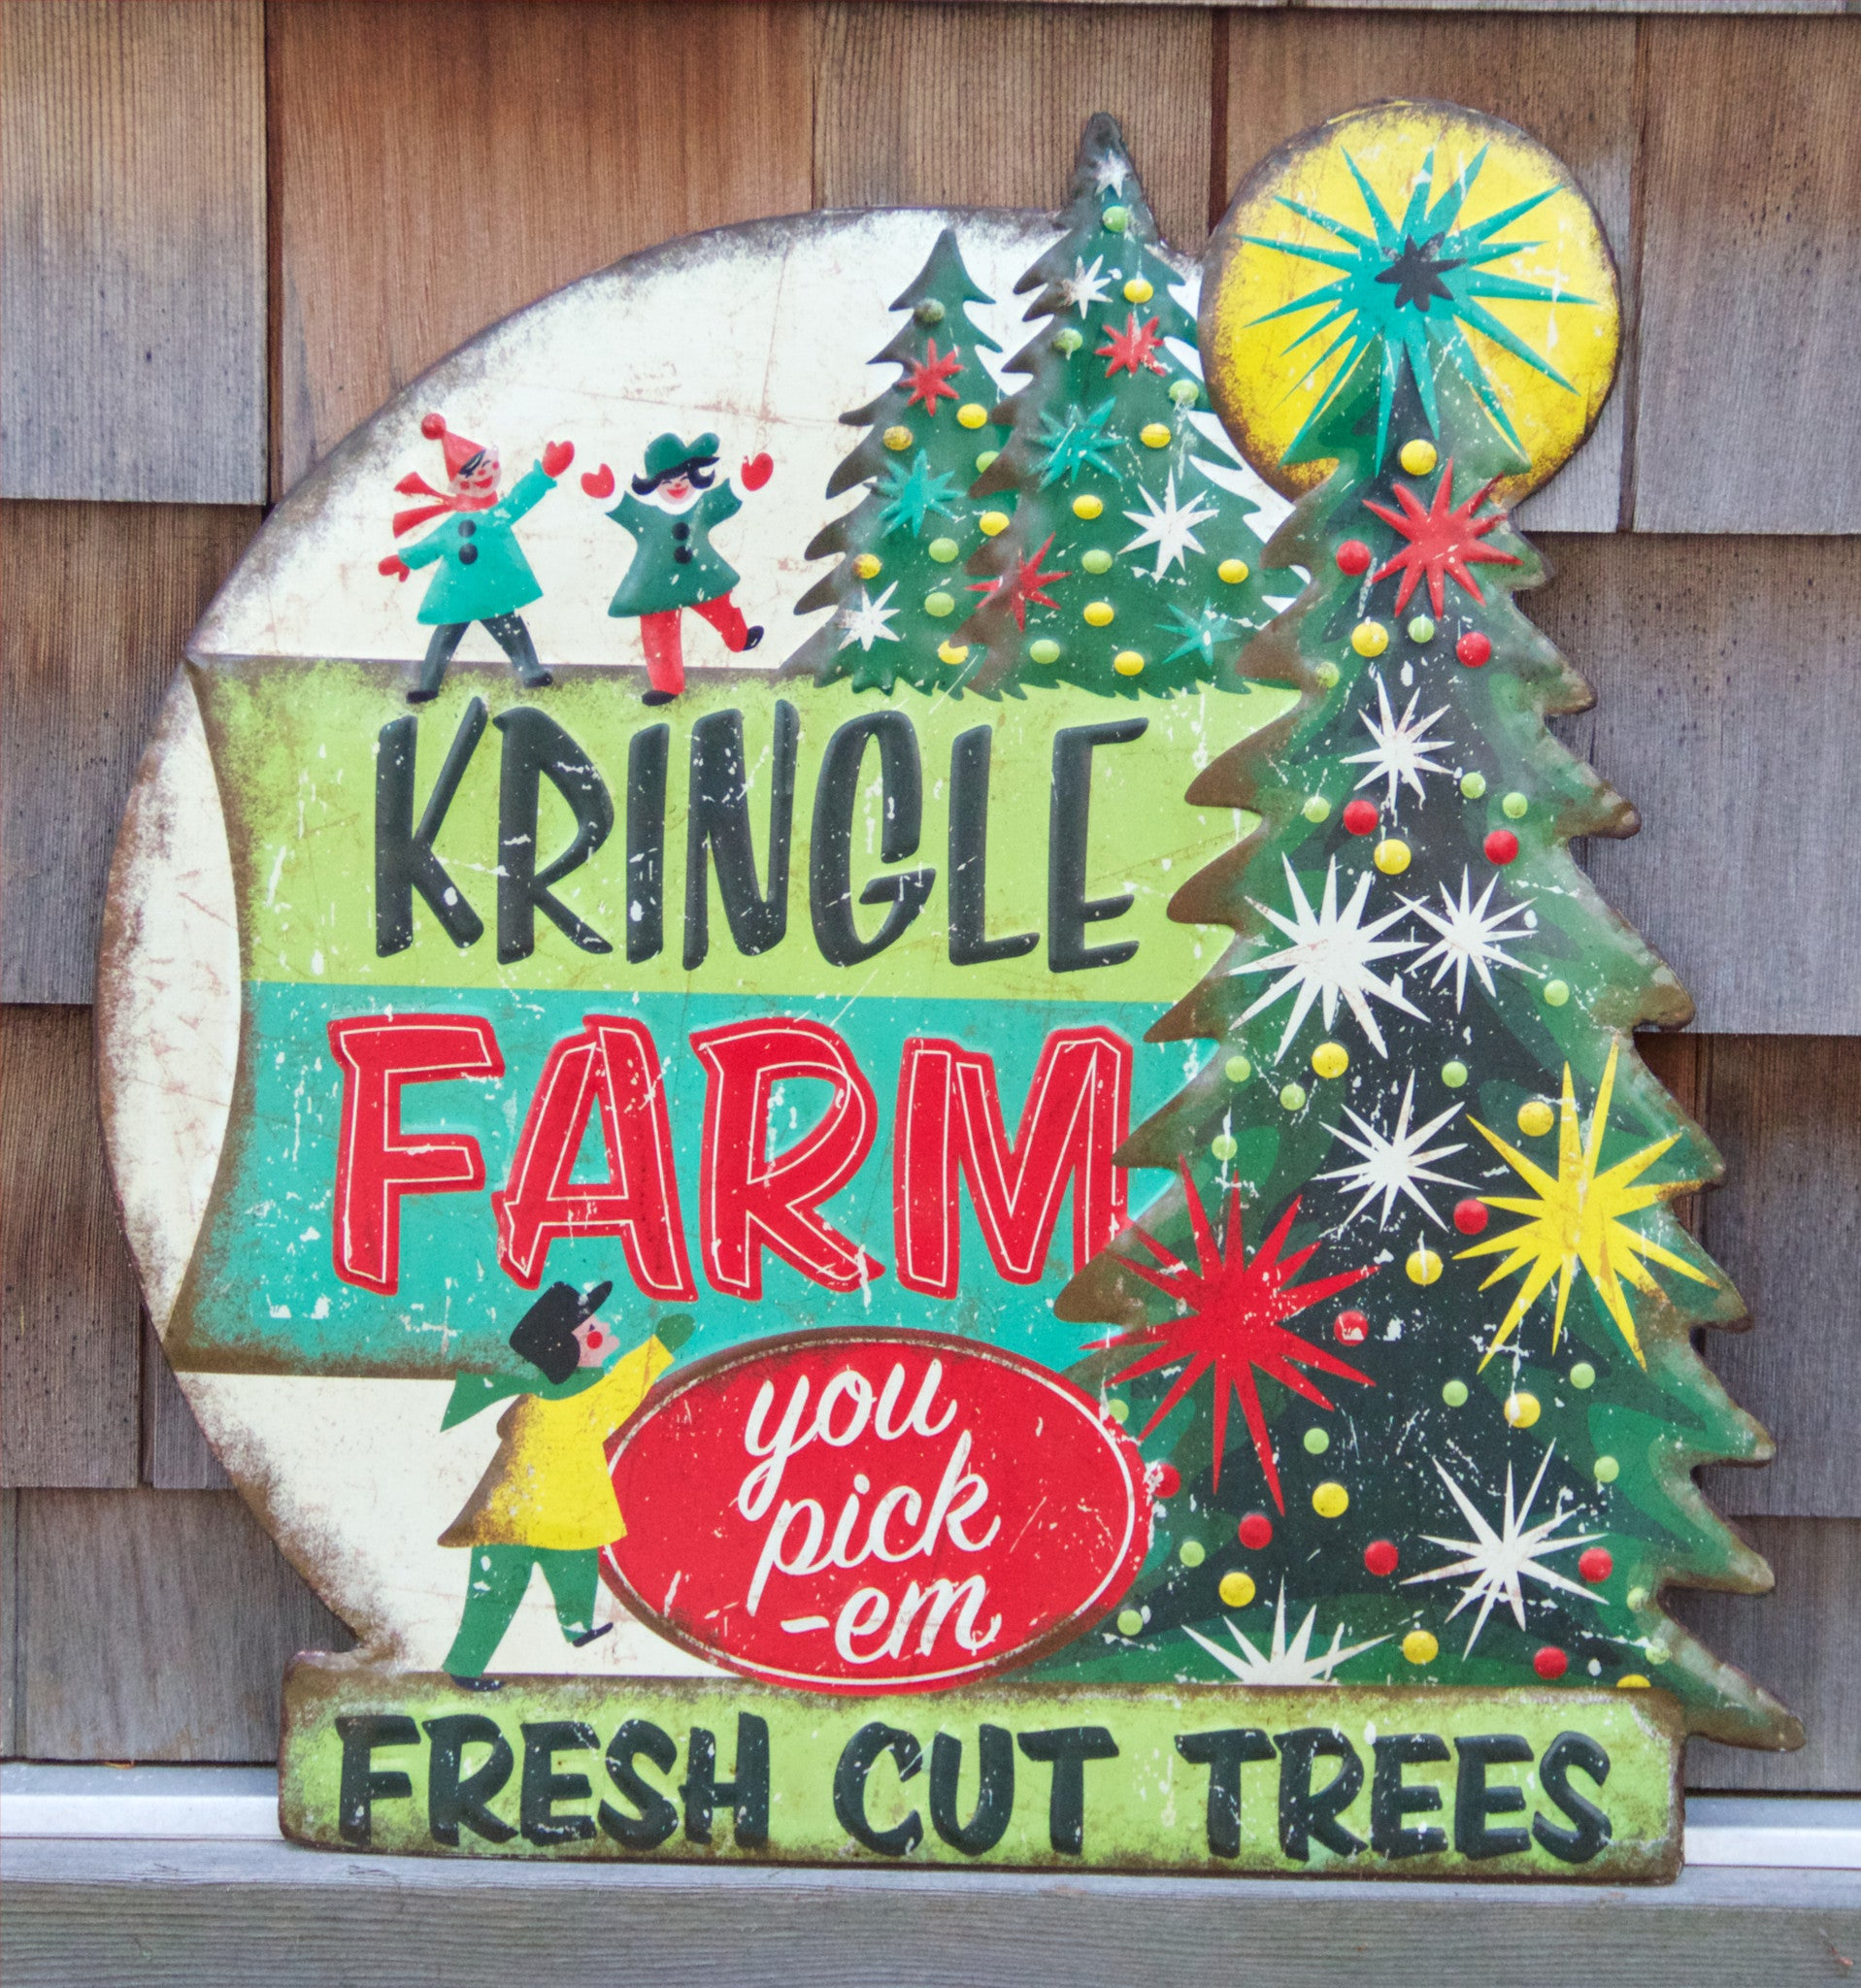 Kringle Tree Farm - Retro Christmas Tin Sign